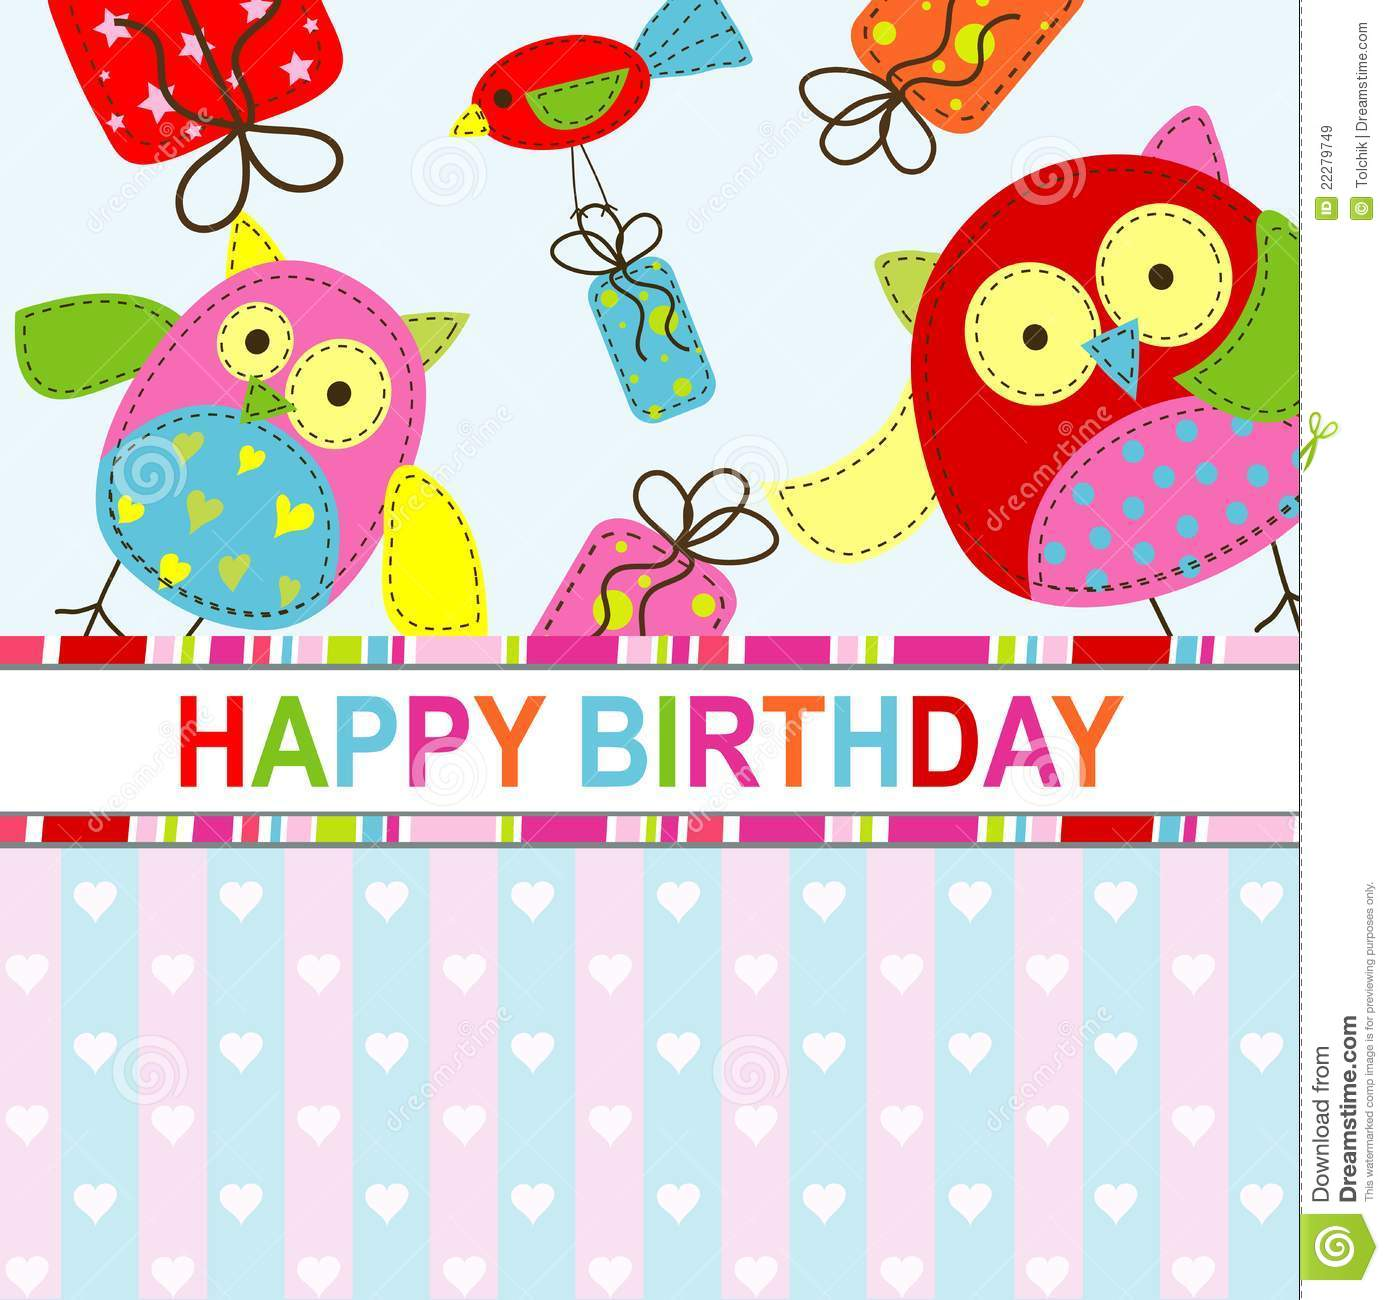 Template Greeting Card Royalty Free Stock Image: Template Birthday Greeting Card Stock Vector